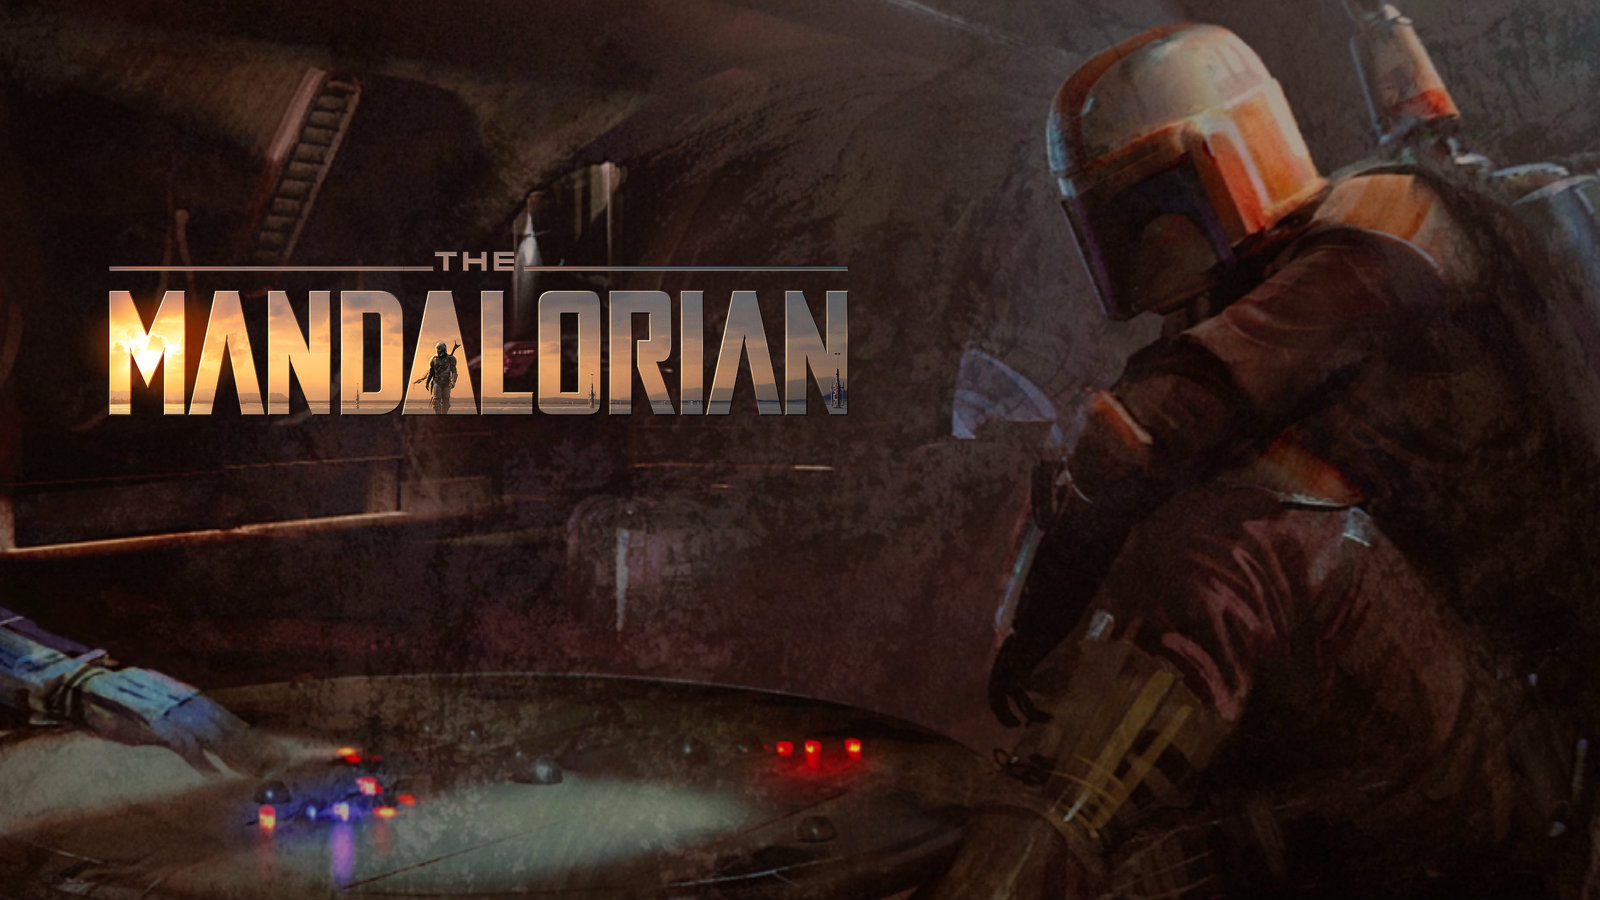 The Mandalorian Season One Star Wars Wallpaper 43208551 Fanpop